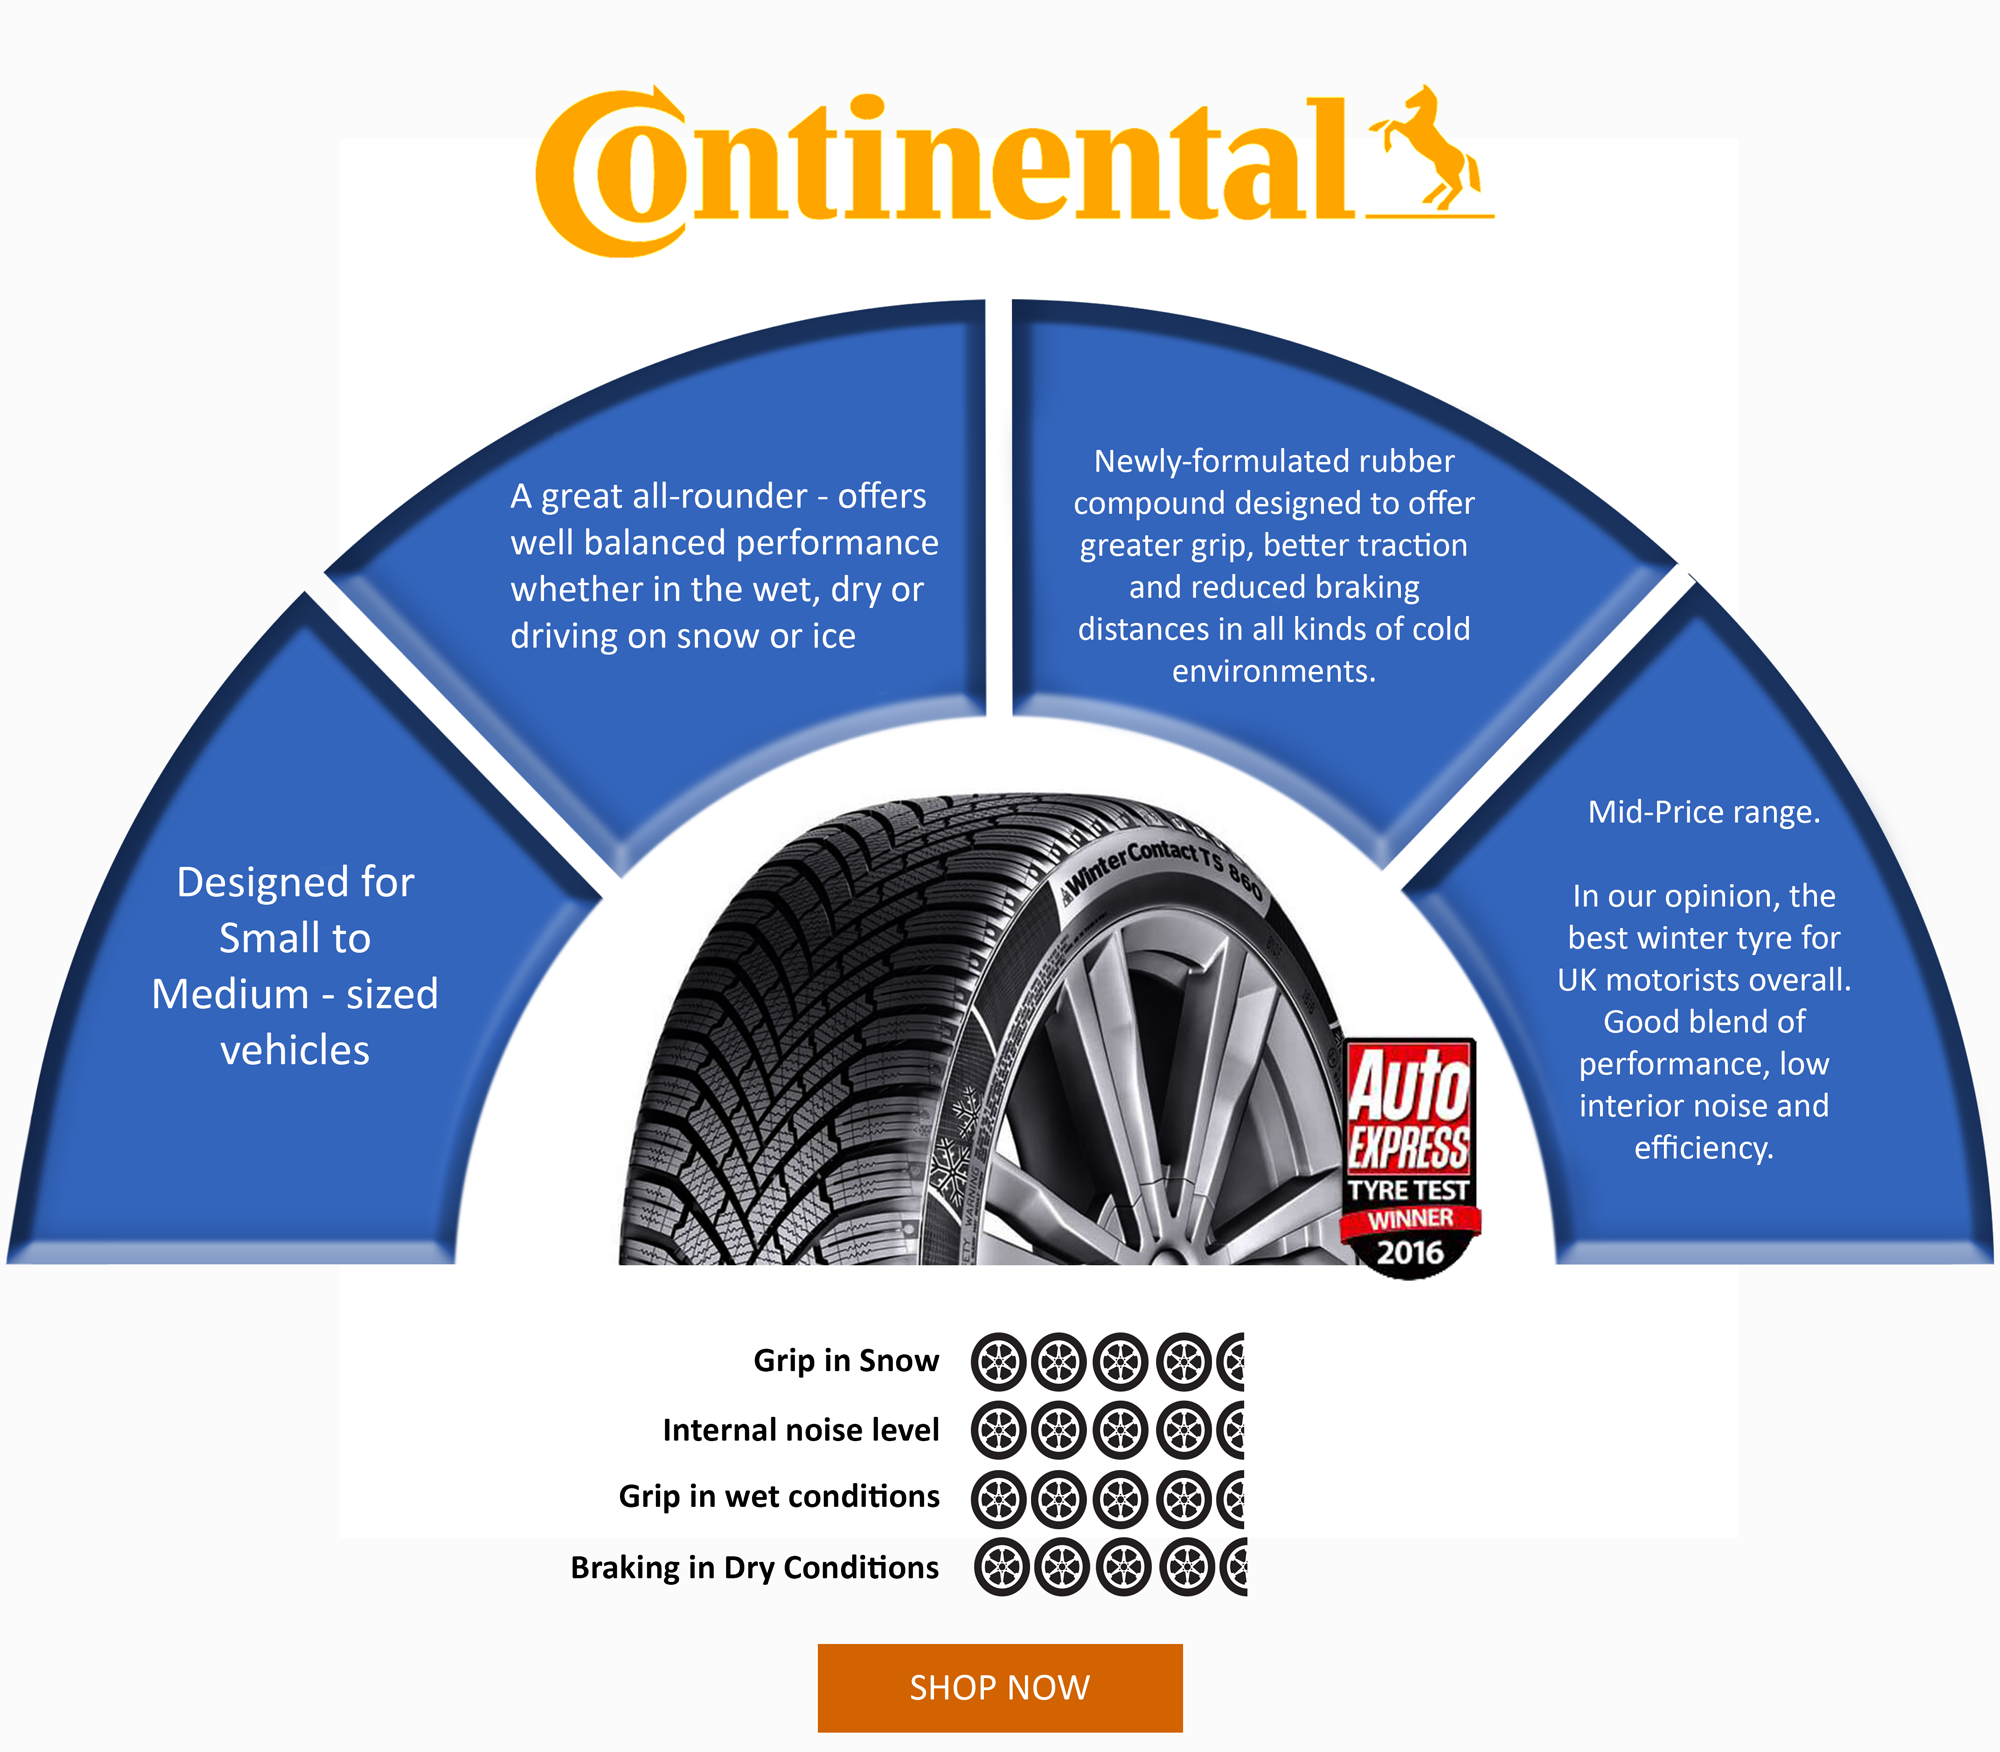 Compare 22 of the best winter tyres